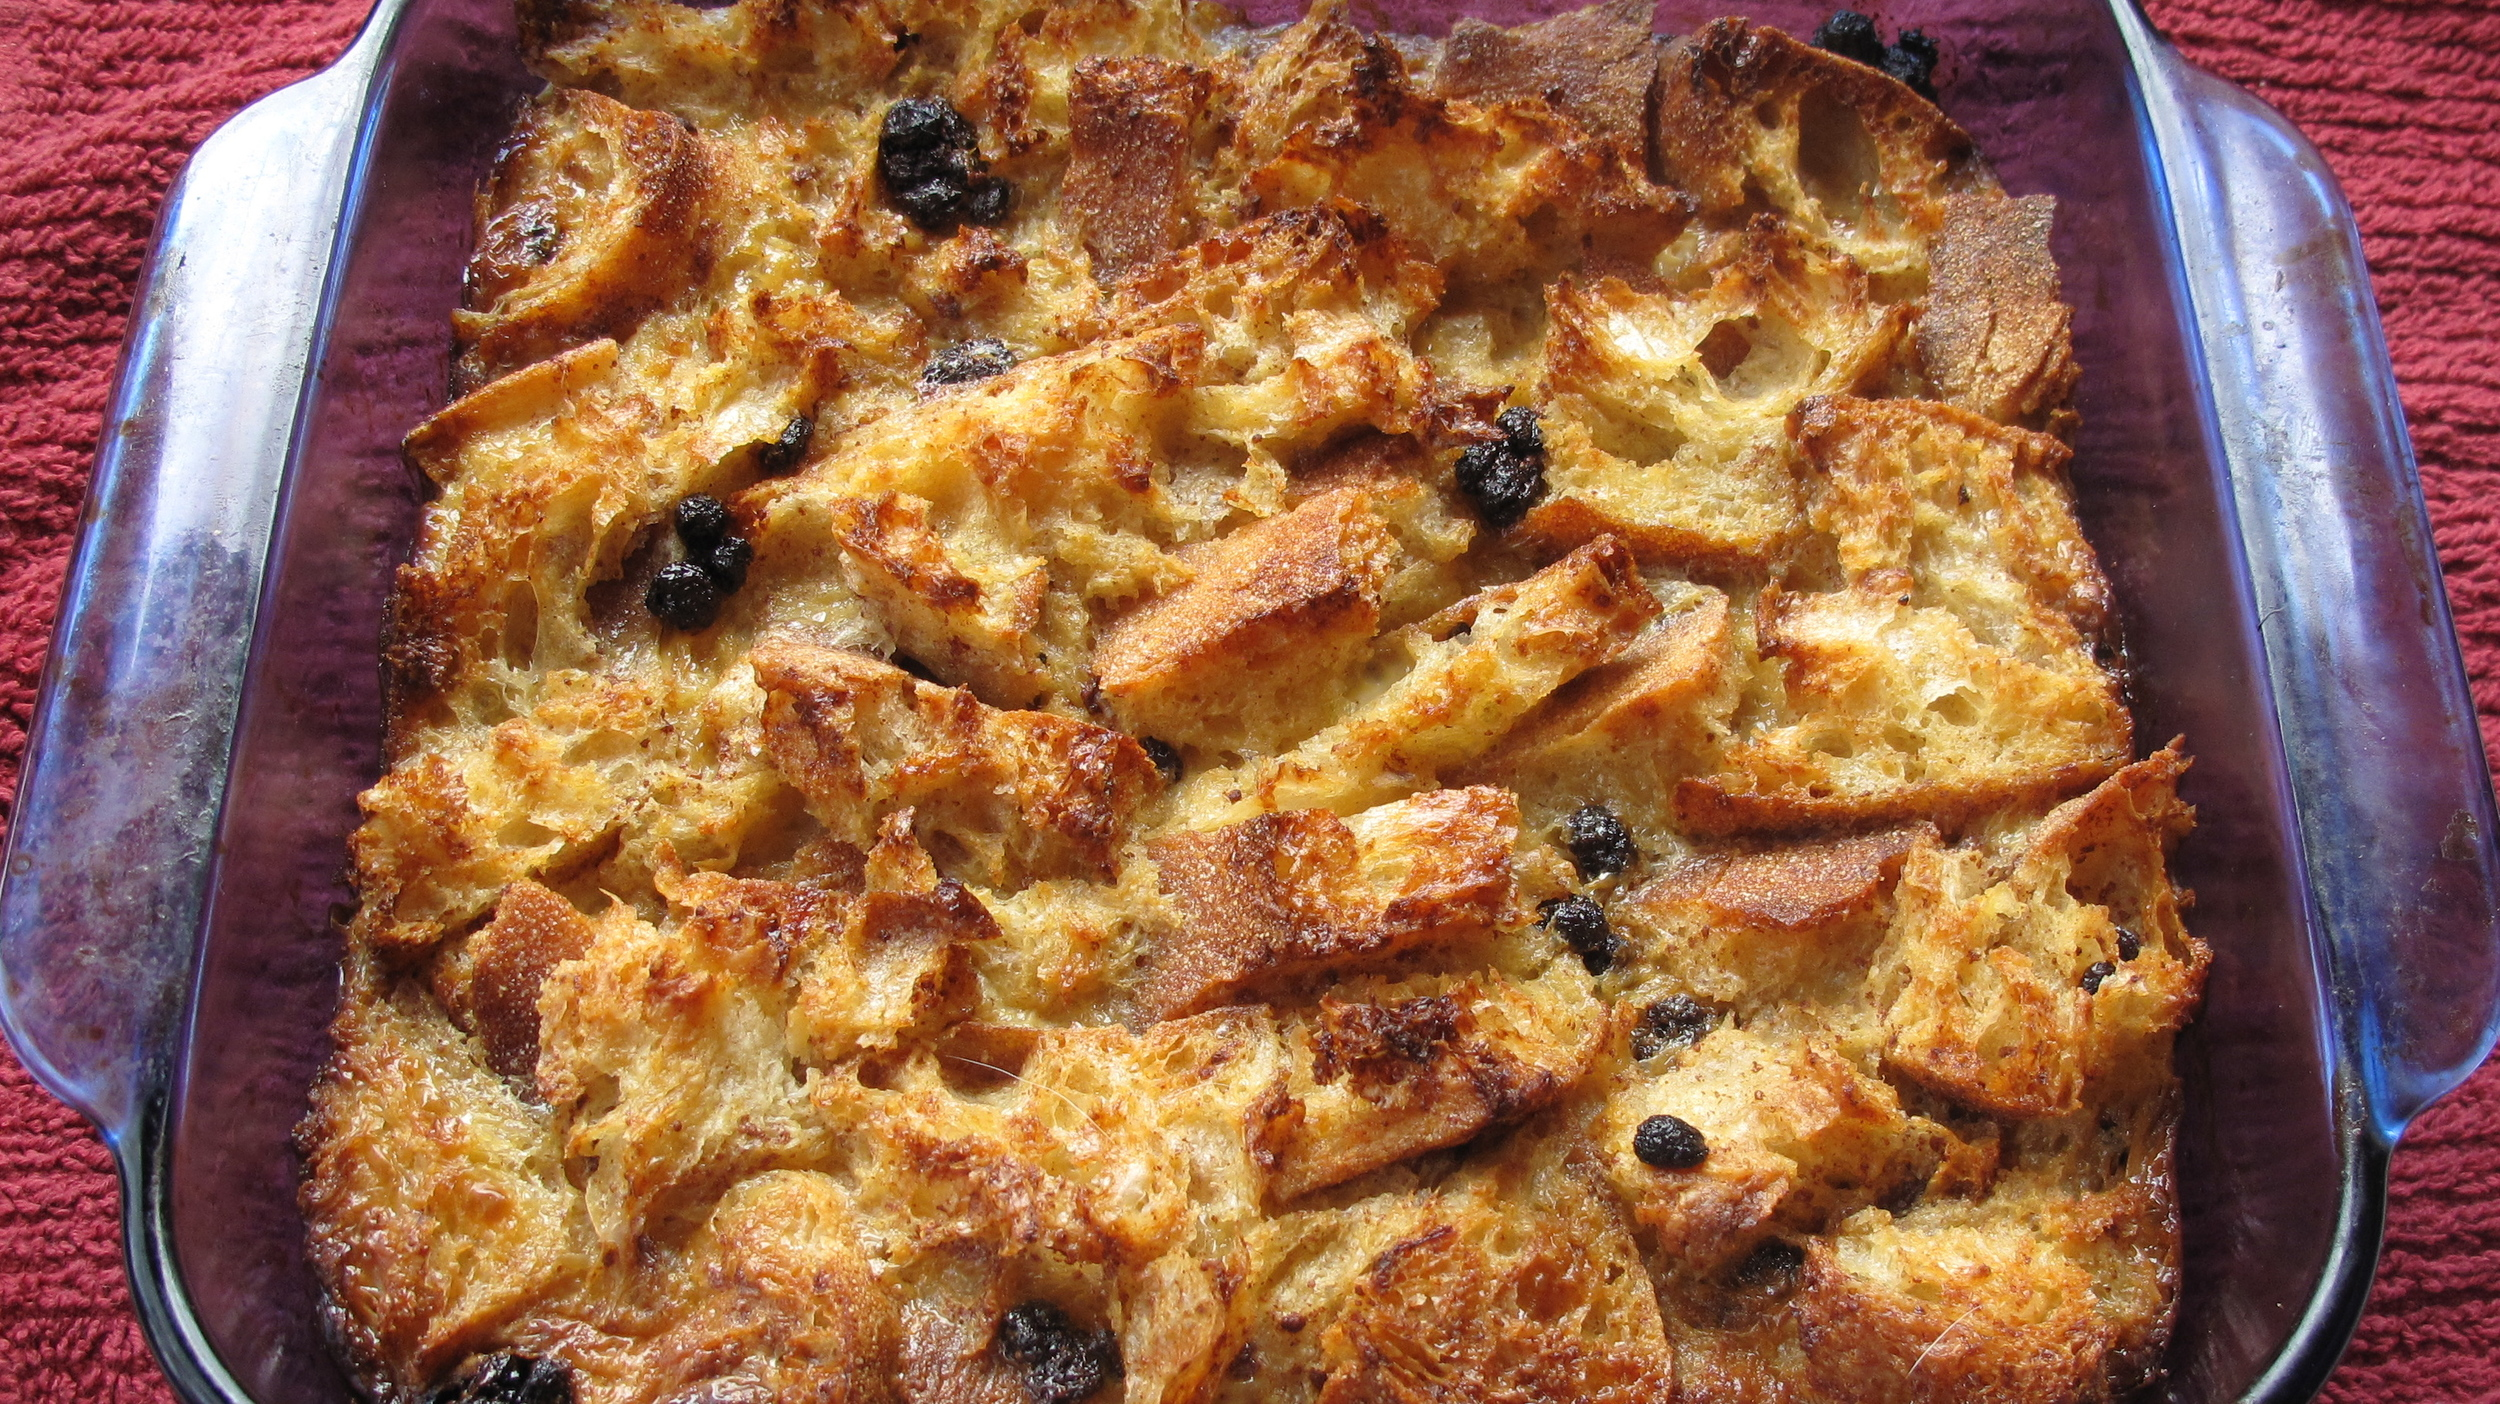 Bread pudding offers simplicity and comfort in each bite.